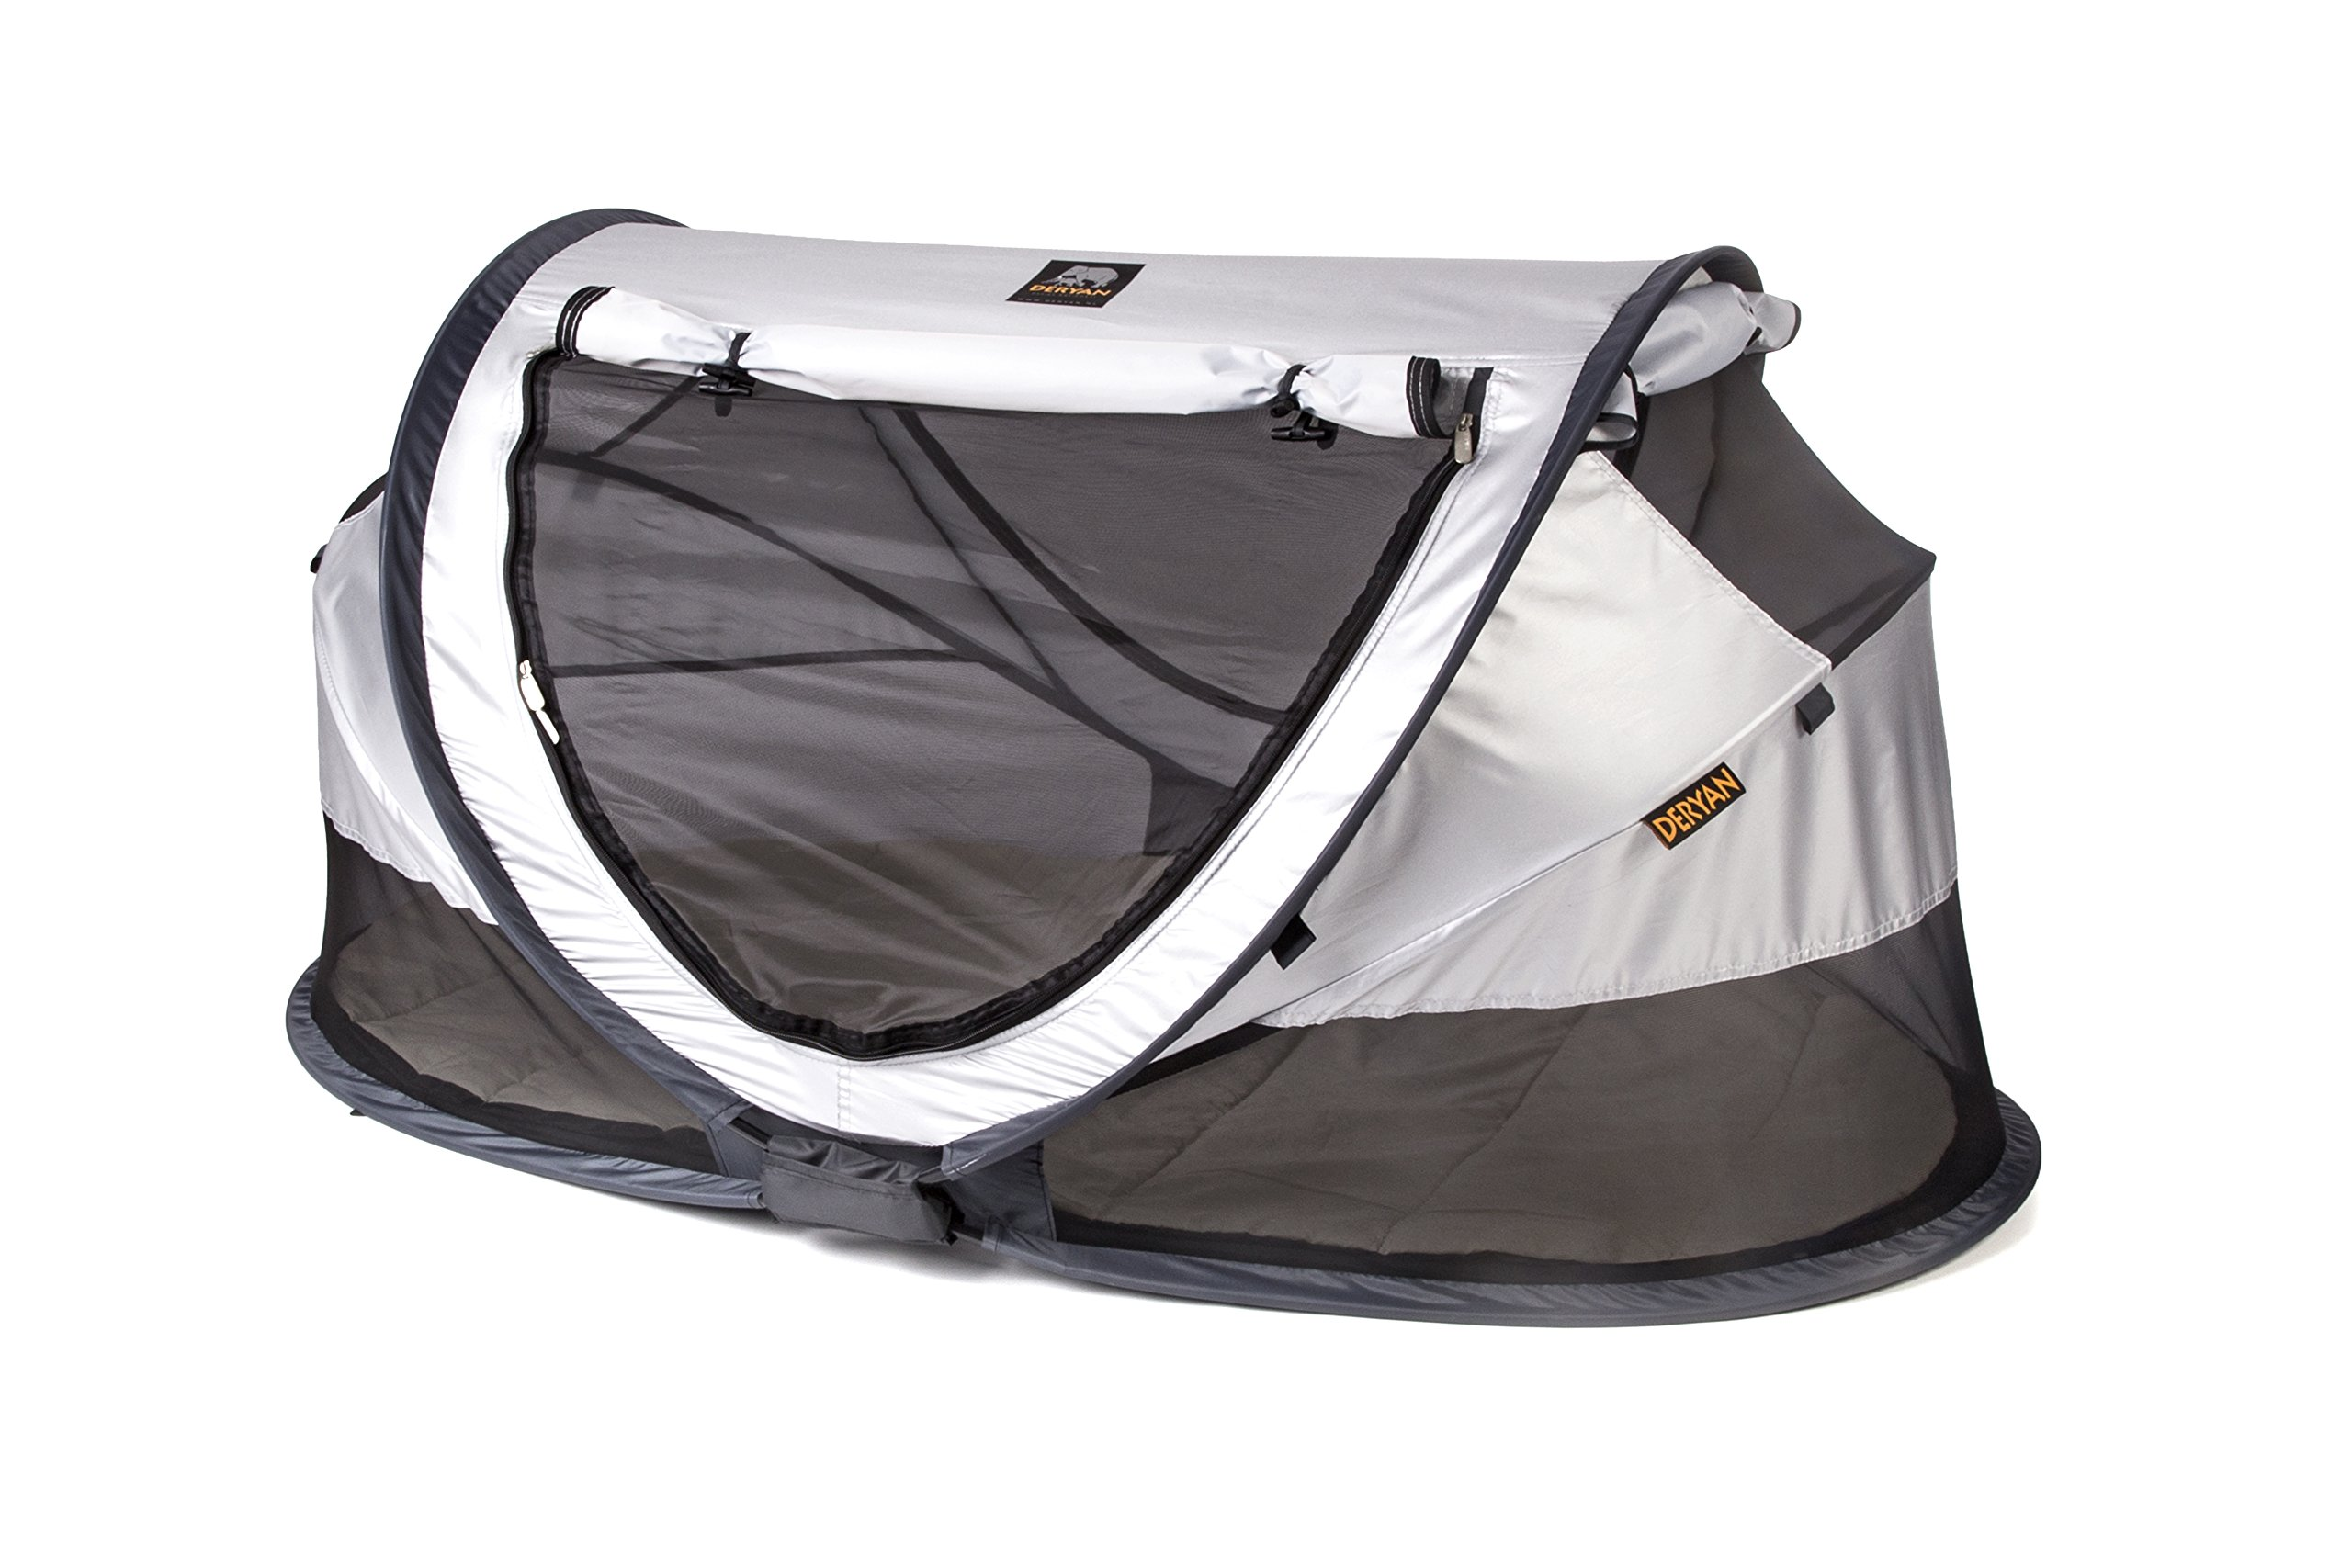 Travel Cot Peuter Luxe (Silver) Deryan 50% UV Protection and flame retardant fabric Setup in 2 seconds and a anti-musquito net  3